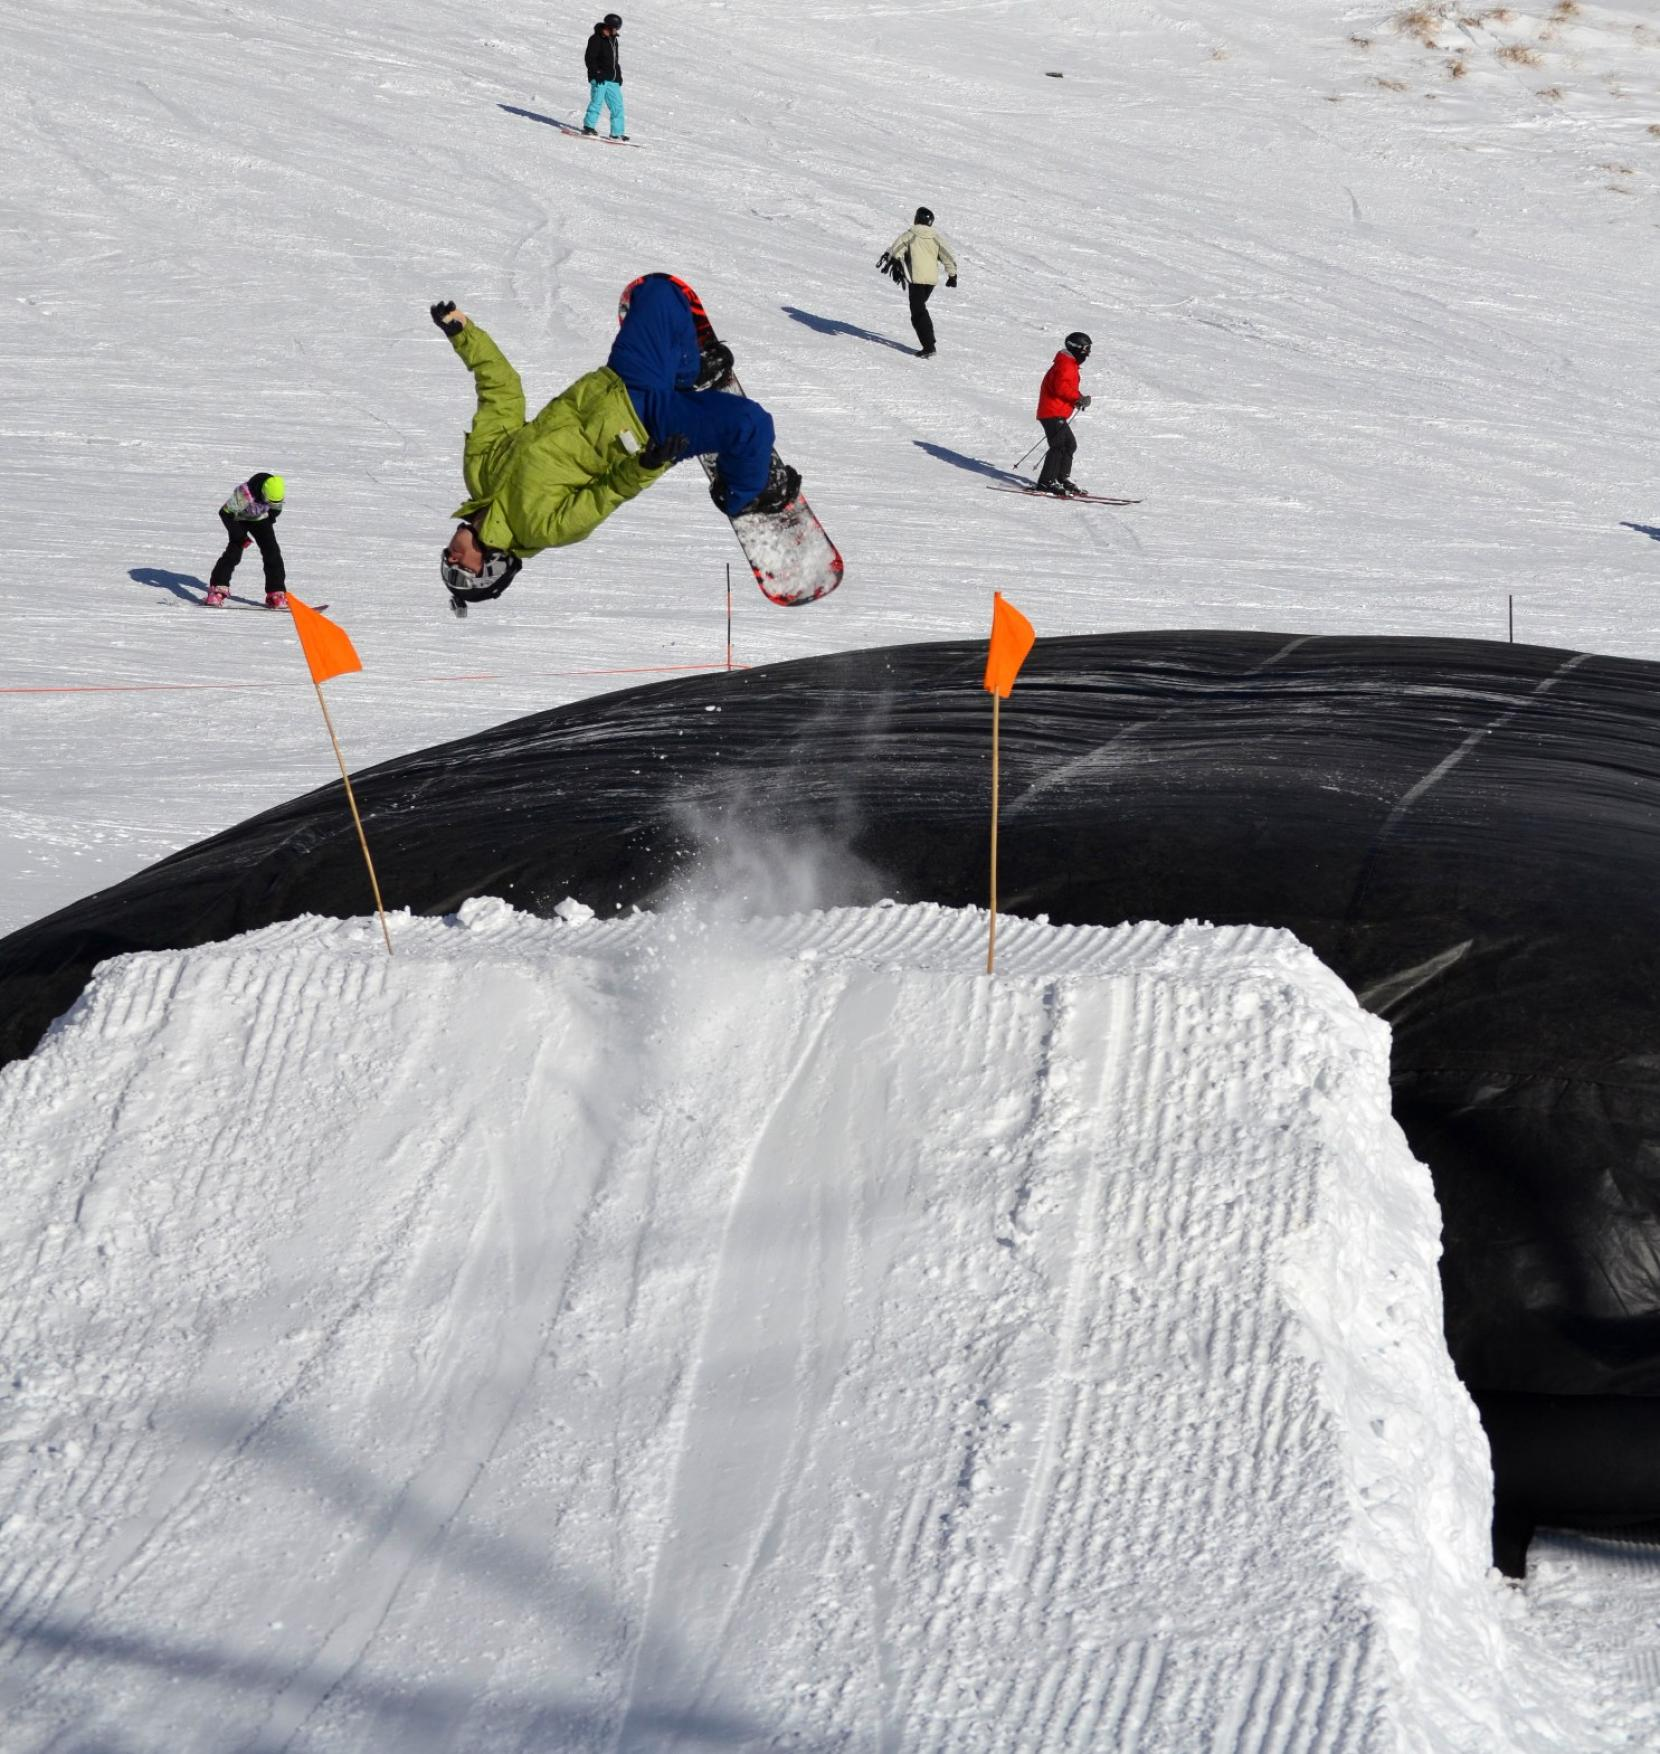 Commonly Used In The World Of Professional And Sporting Stunt Jumps Supersized Airbag Returns To Ski Area Most Weekends From 10am 4pm Is Set